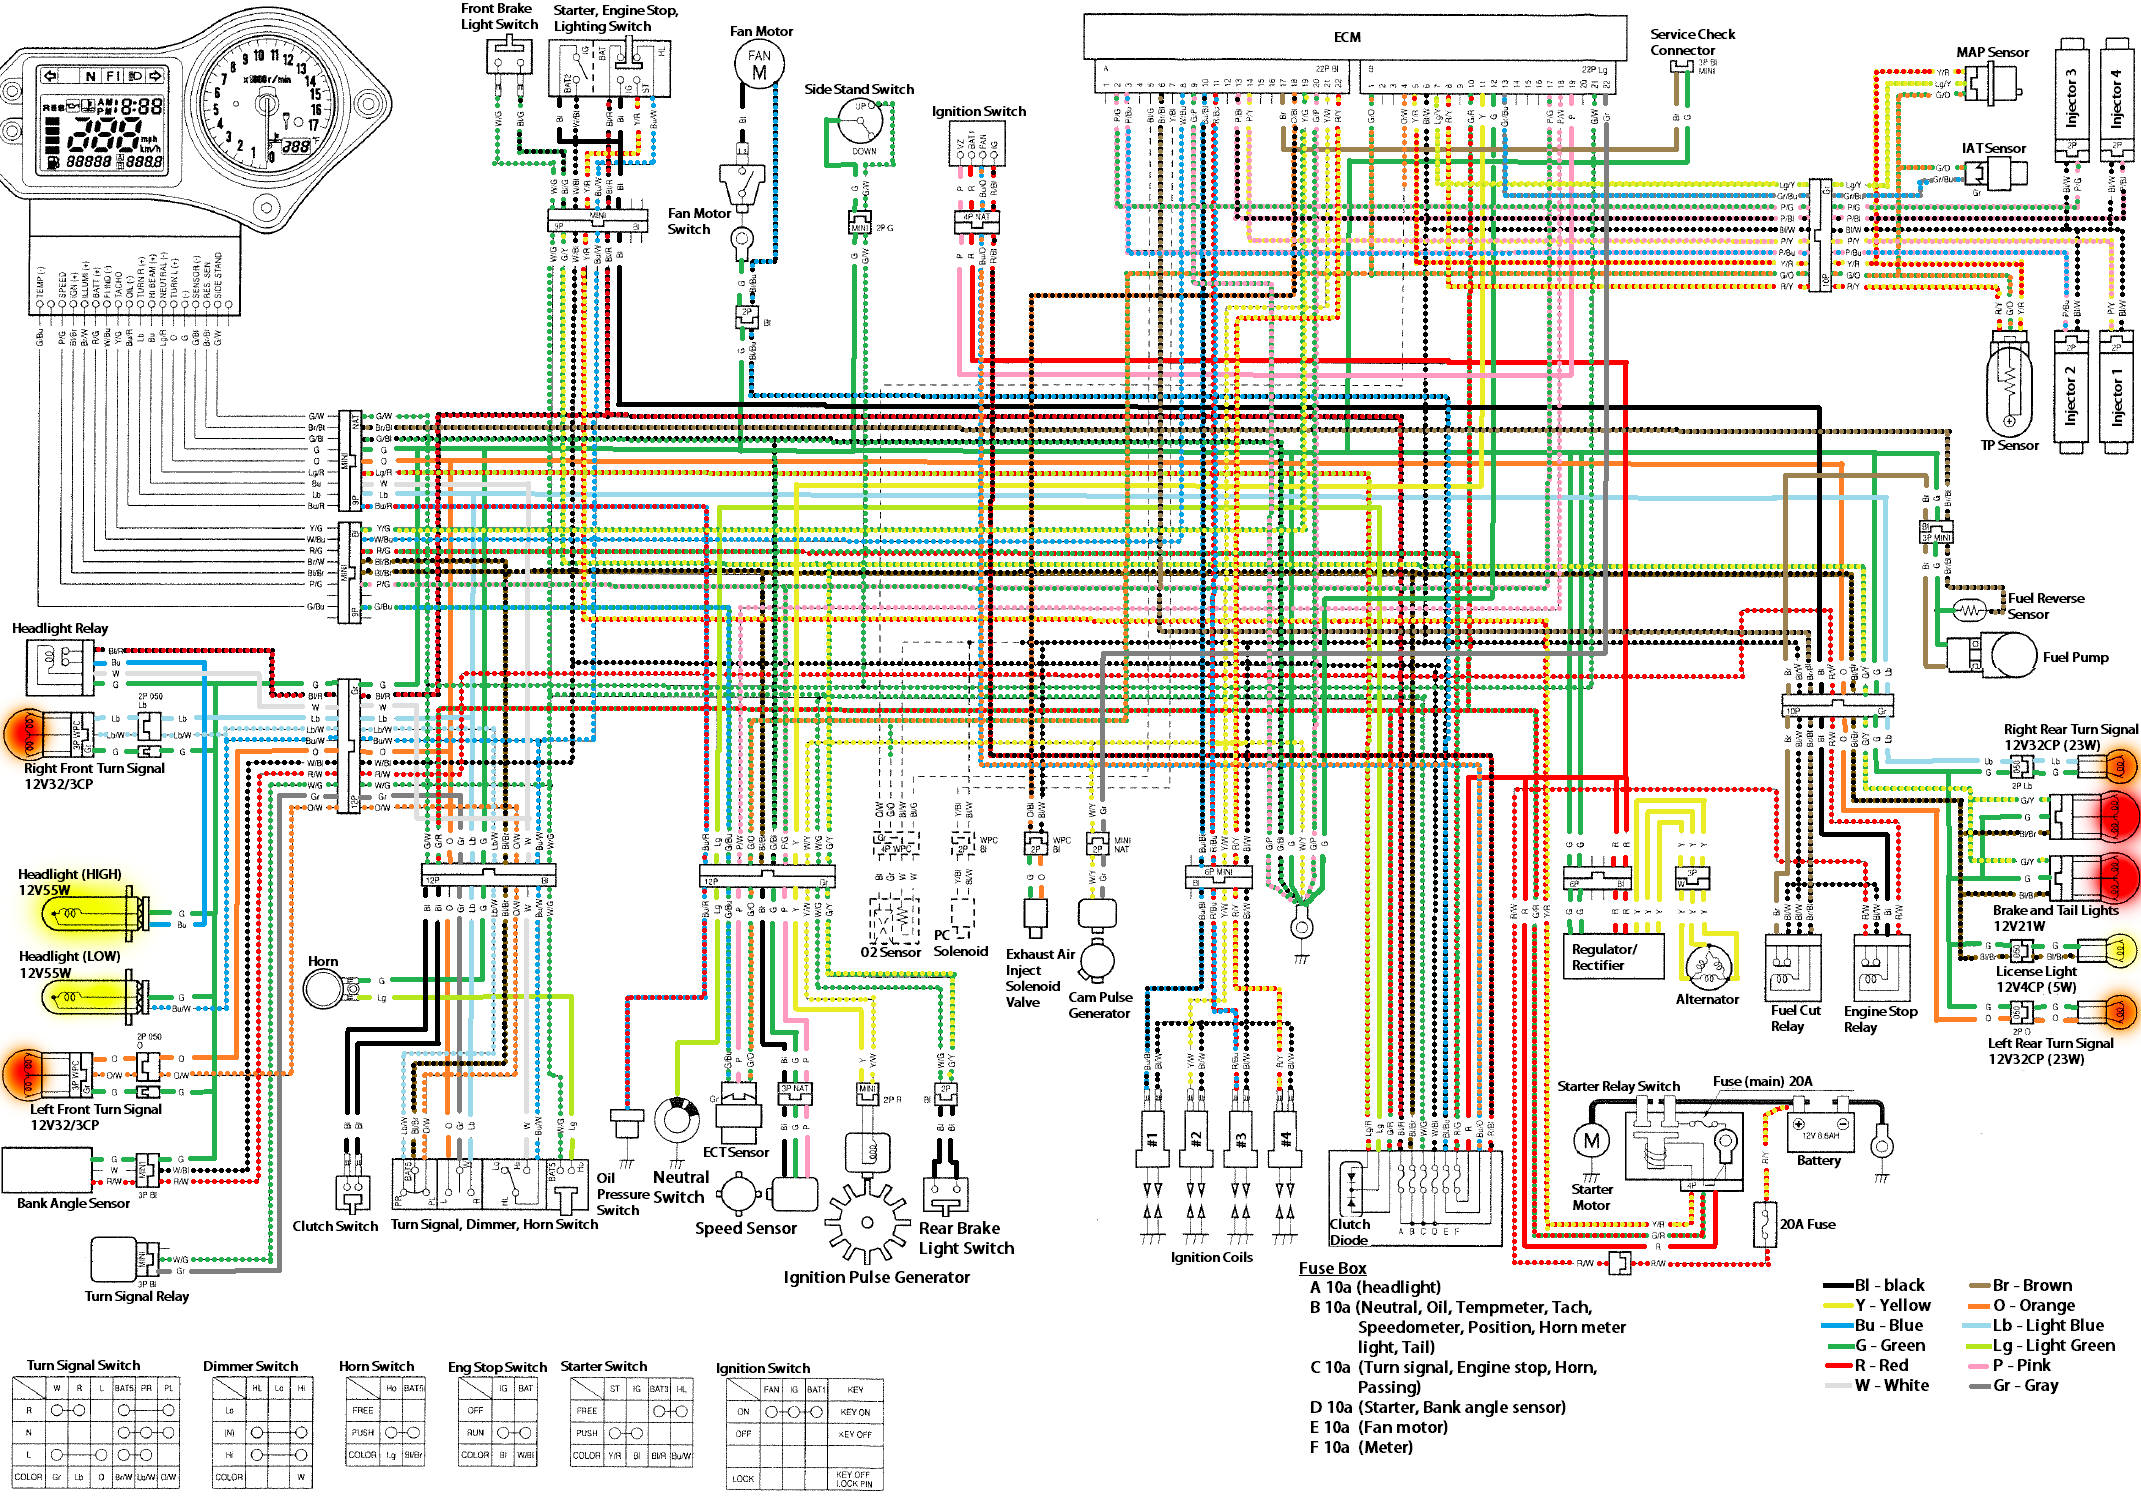 Wiring_diagram_cbr600f4i_2001 2003_color cbr 600 wiring diagram 2013 honda cbr \u2022 wiring diagrams  at webbmarketing.co